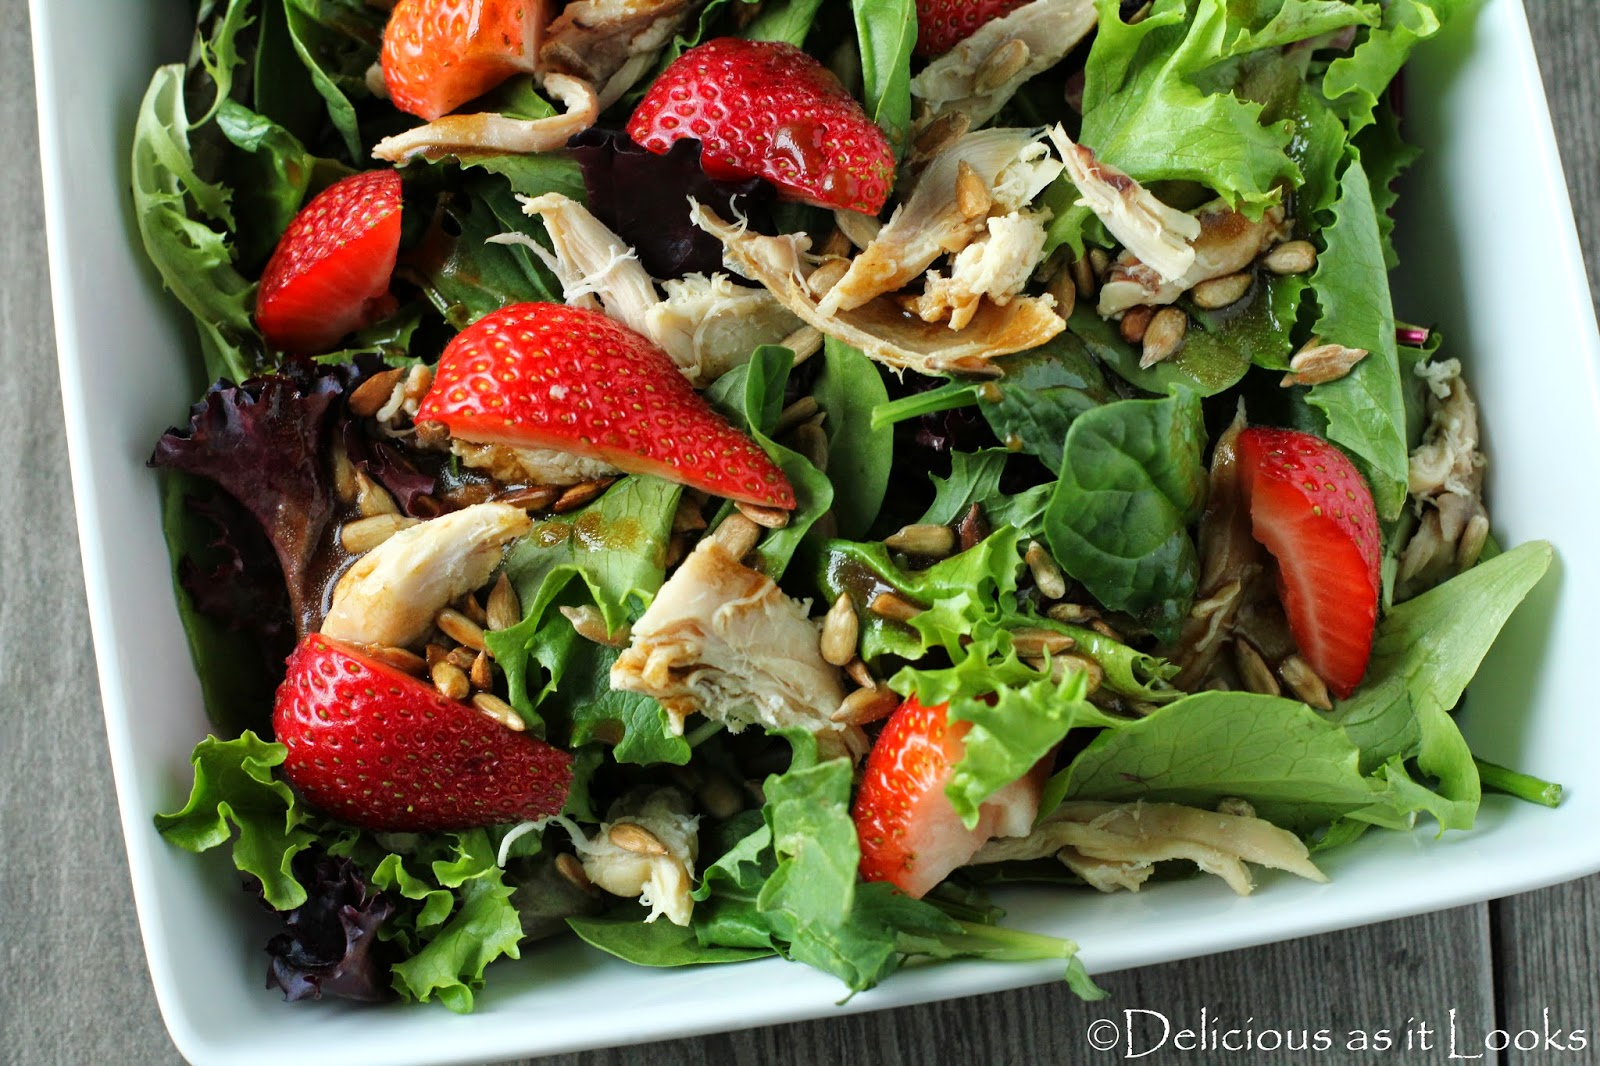 Balsamic Chicken Salad with Strawberries   /  Delicious as it Looks